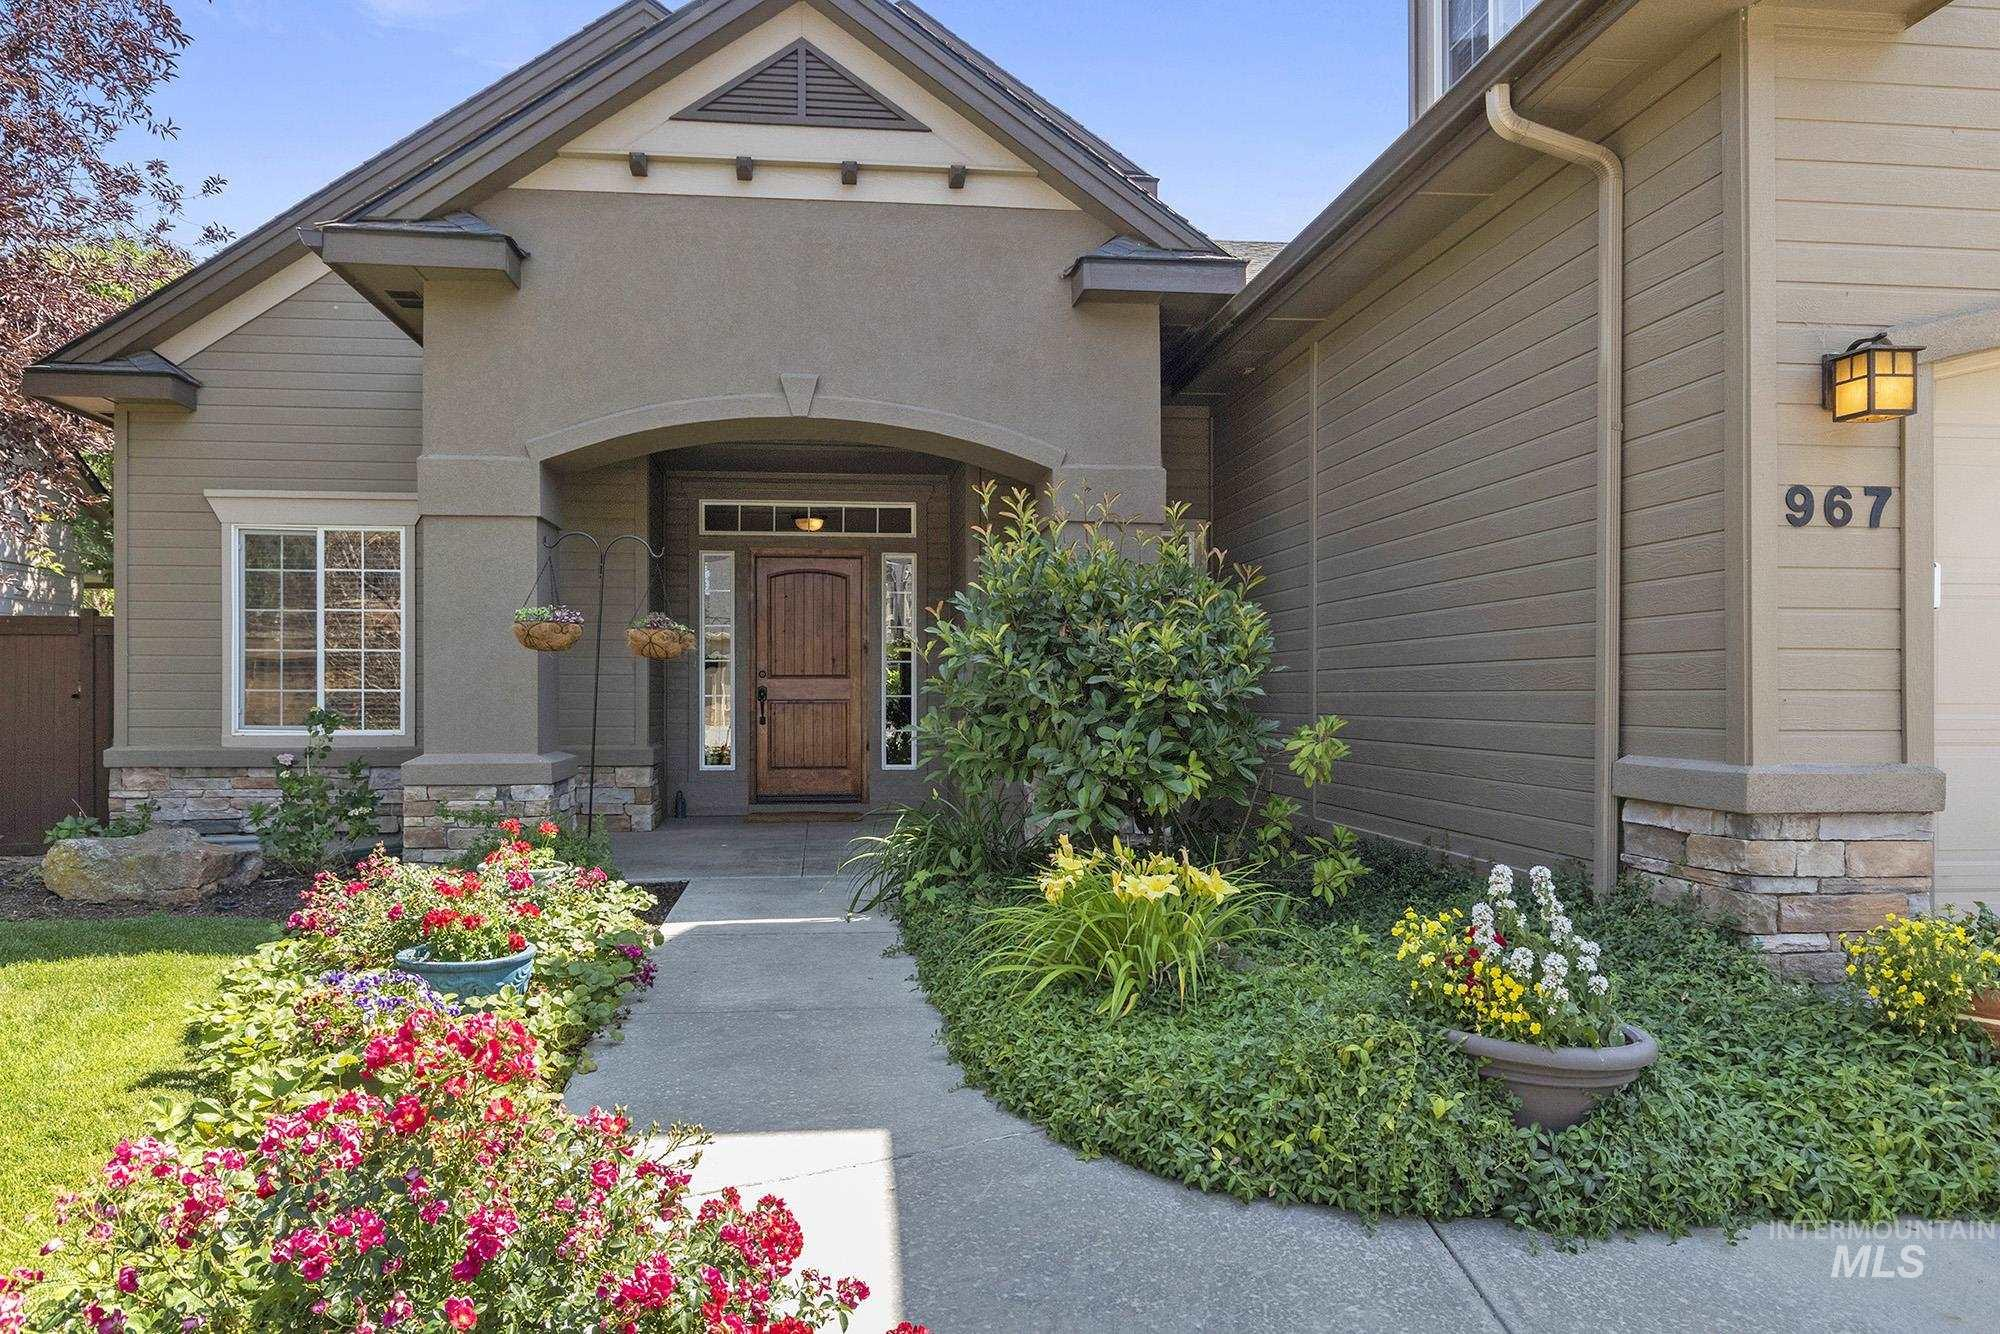 Spacious home on a large lot in Paramount neighborhood! A covered front porch welcomes you. Upon entry, enjoy the warm touches of wood trim and travertine floors. A massive kitchen features granite countertops, a chef's island, walk in pantry and custom bakers rack. Main level master includes a private patio & walk in closet with w/d hookups. Upstairs, an oversized bonus room, bedrooms & laundry room provide space for everyone to spread out. Enjoy your covered patio, 4 season landscape & neighborhood pools.